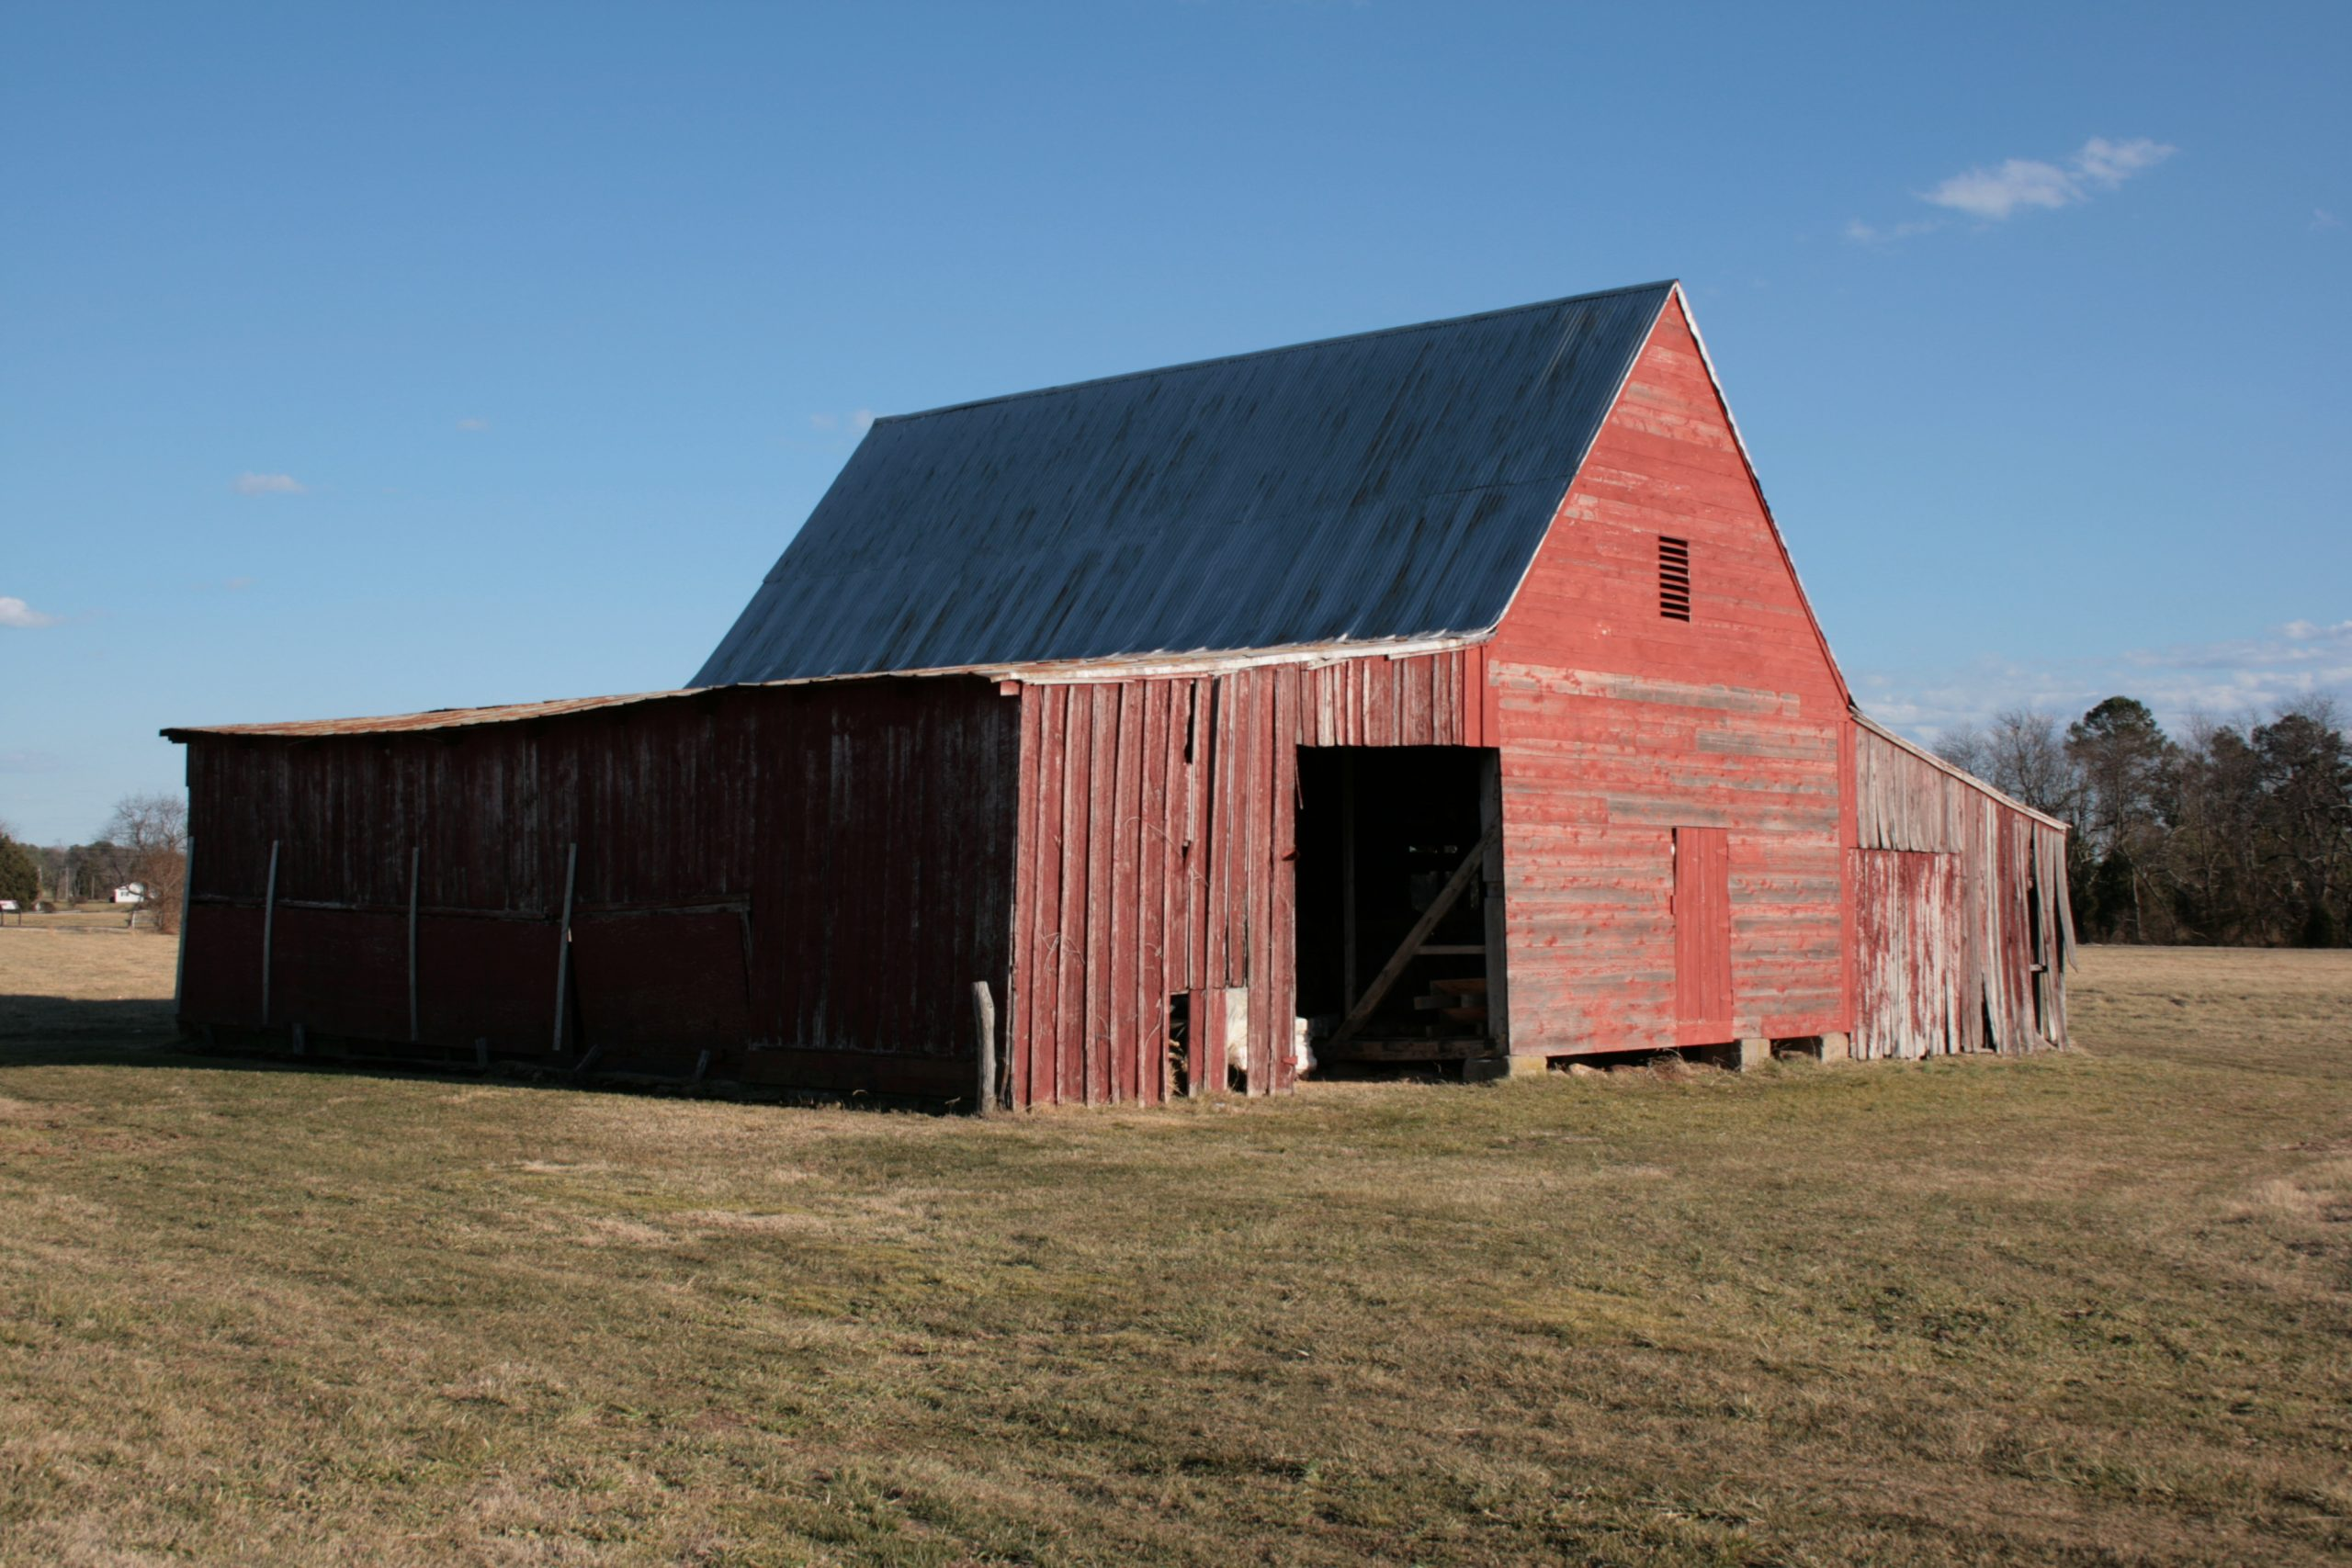 An image of a barn in Historic St. Mary's City, used for some time as a tobacco barn.